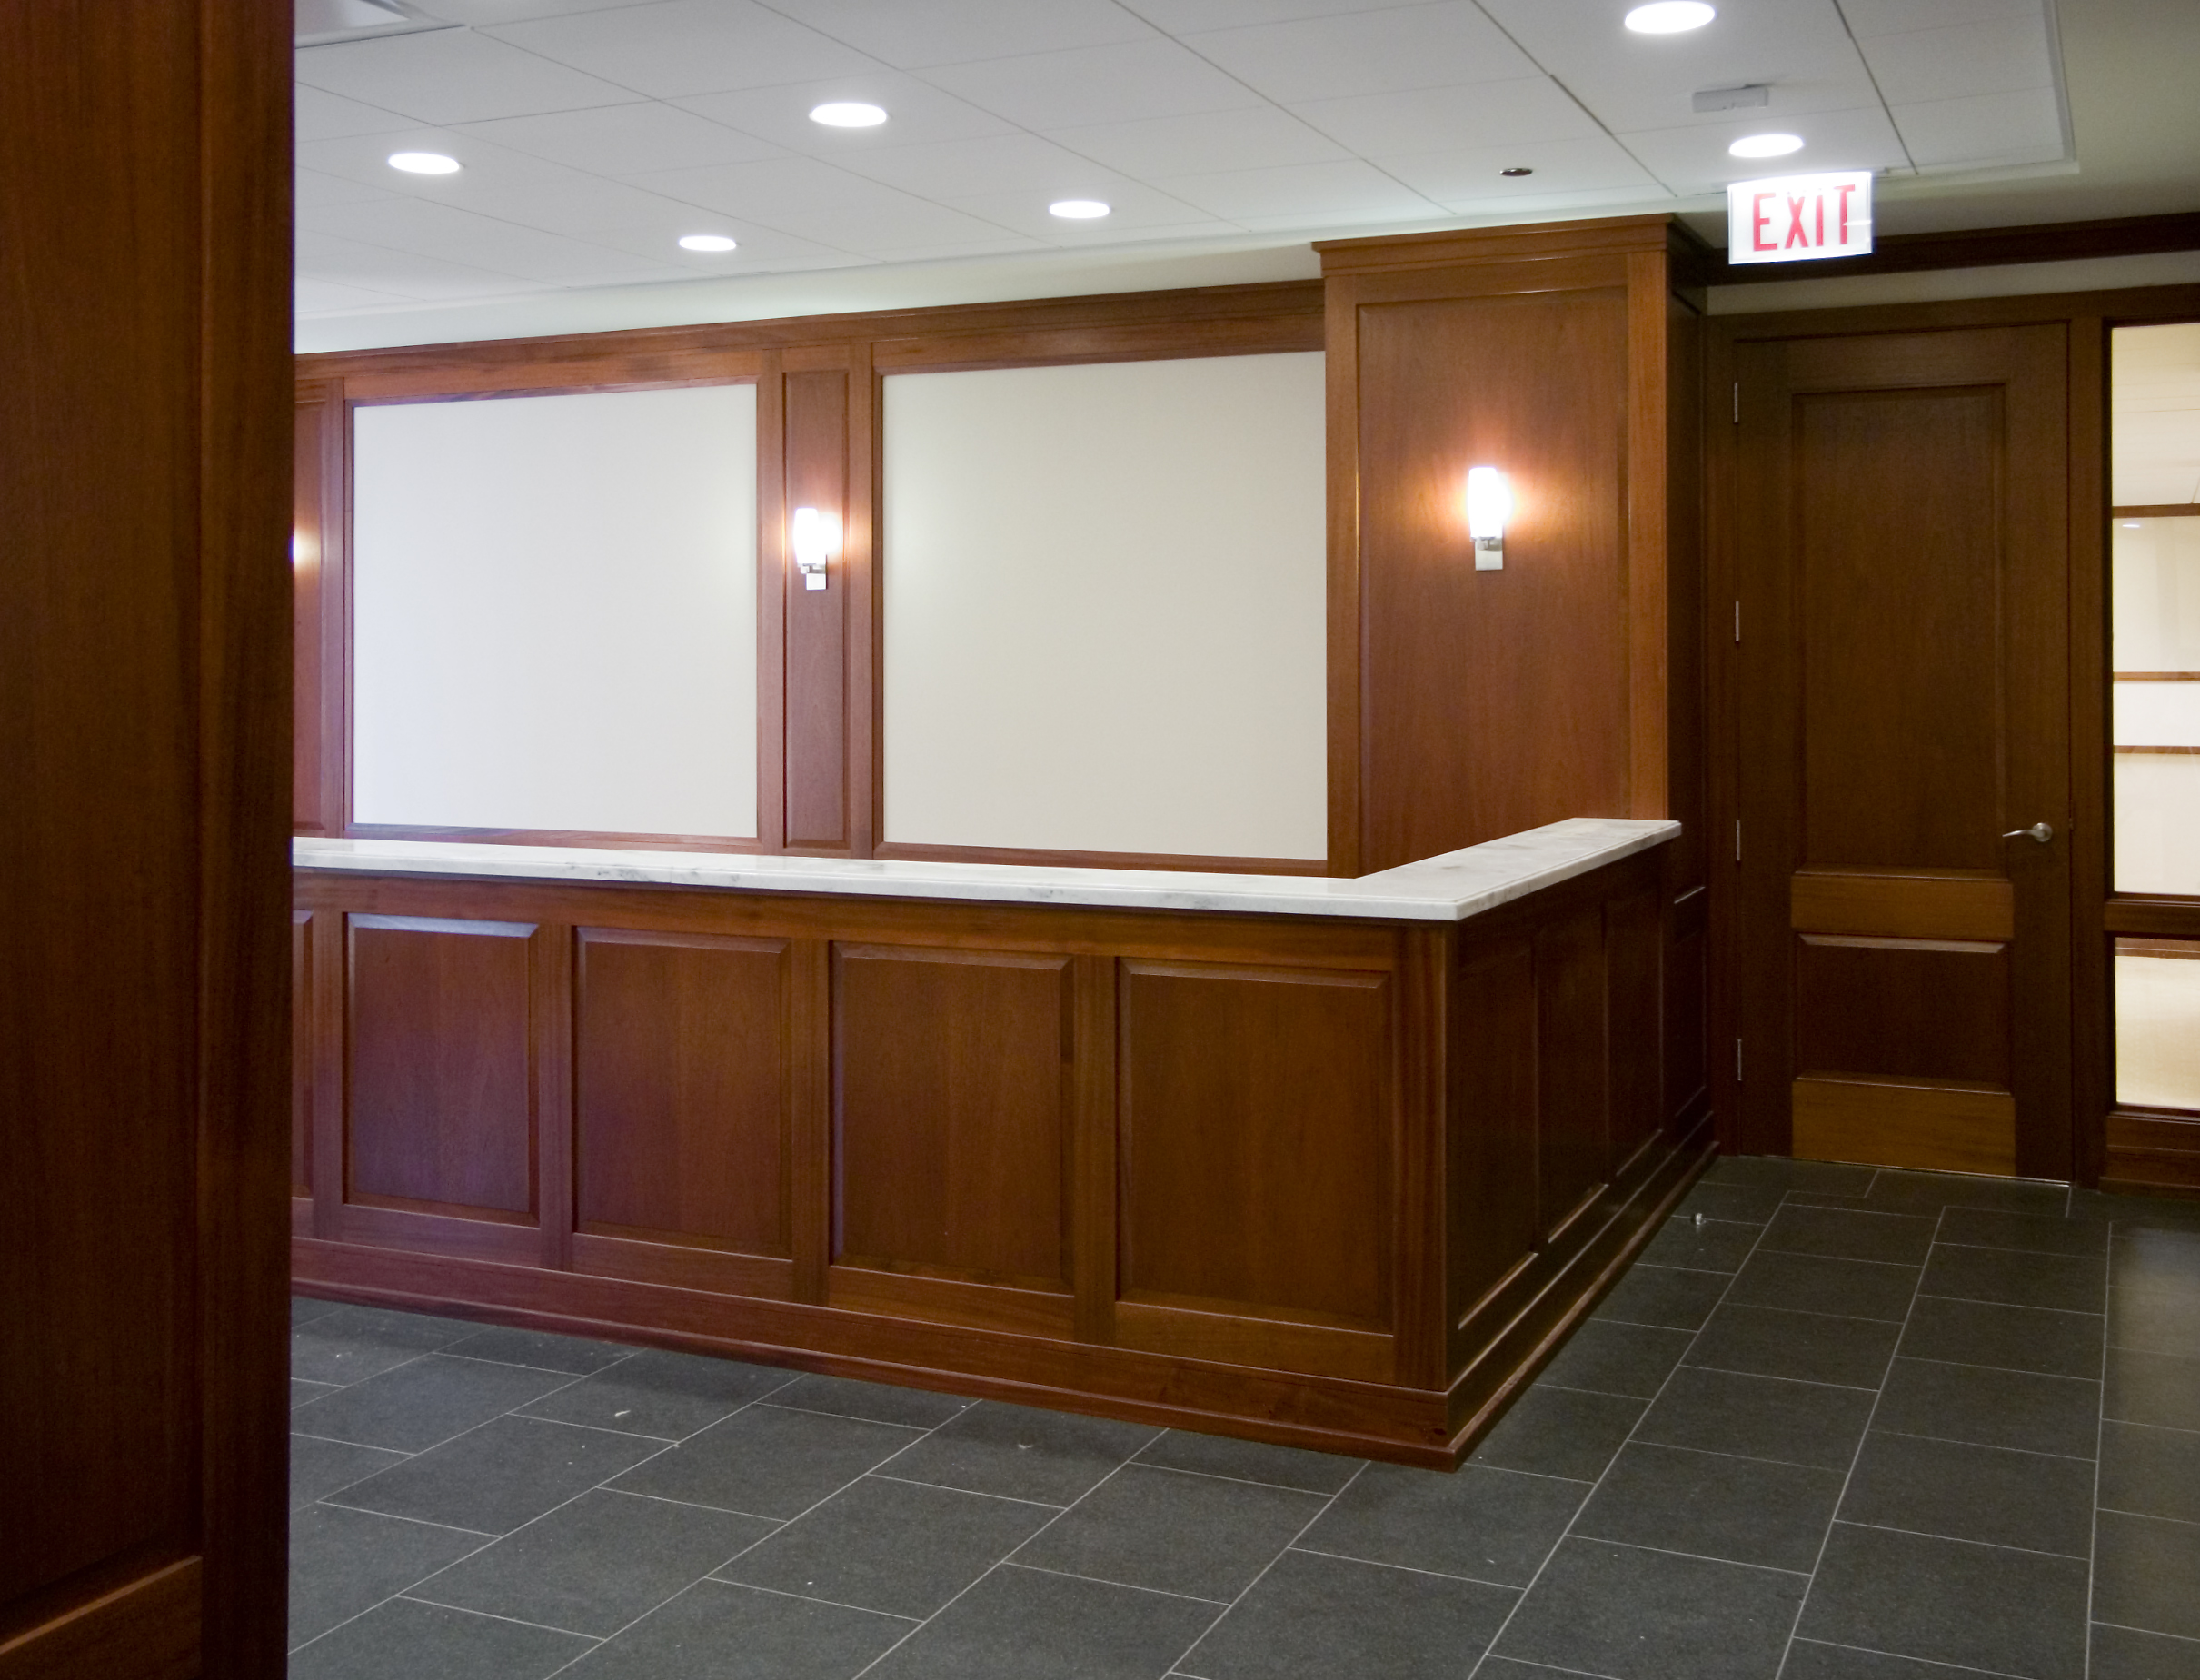 Drawn office reception area A counter office Dant entrance